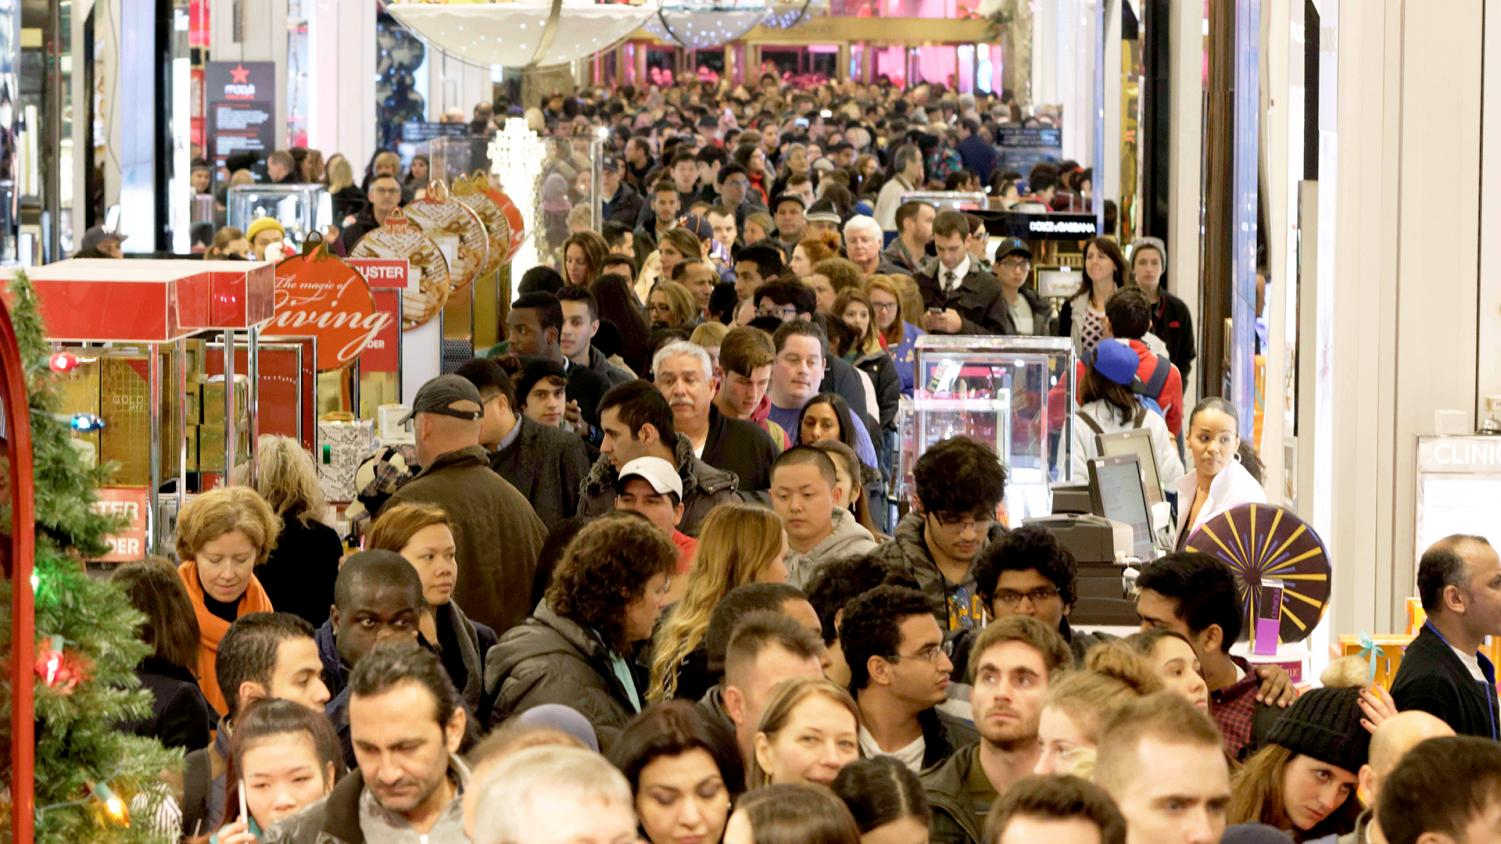 Despite stores being open on Thanksgiving, the crowds are still rough on Black Friday.